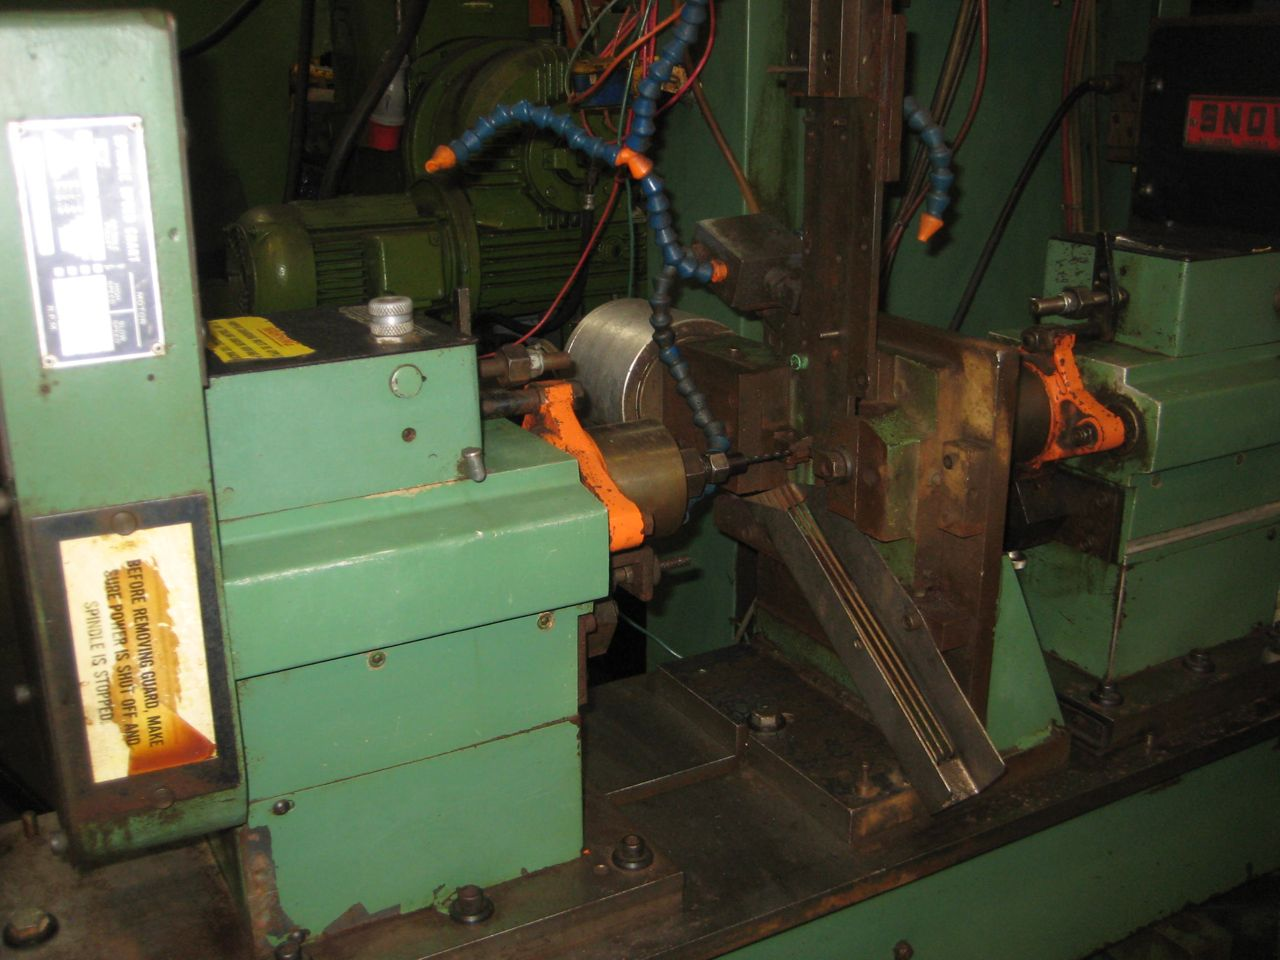 Snow Model 2SPHD01 Double Spindle Horizontal Drilling Machine